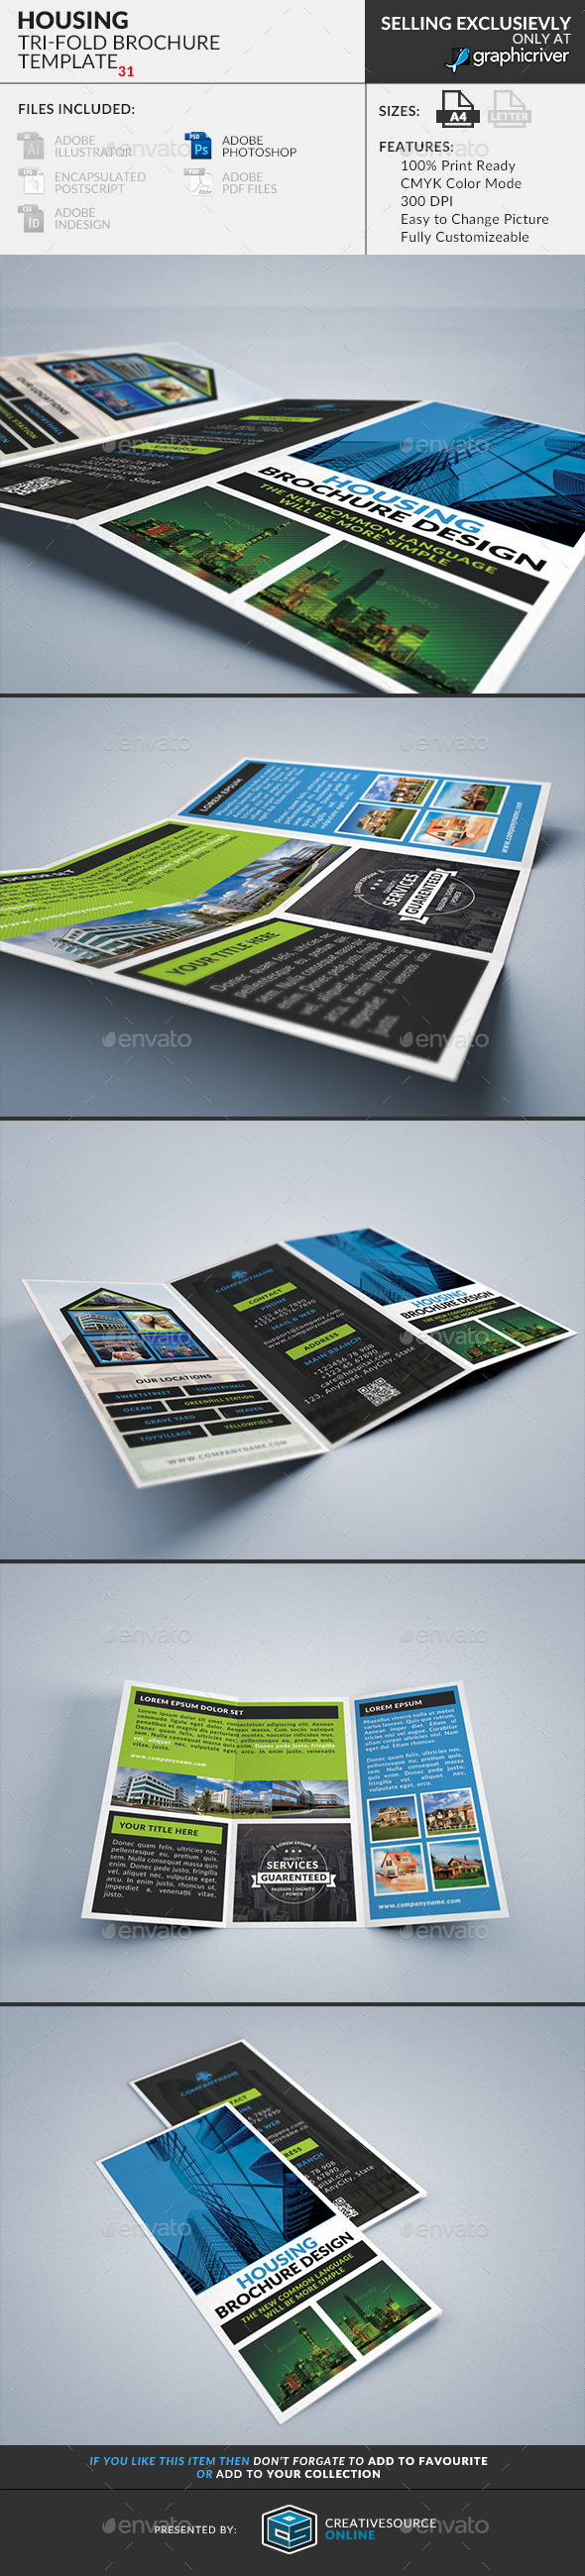 Trifold Brochure 31 : Housing & Real State - Corporate Brochures